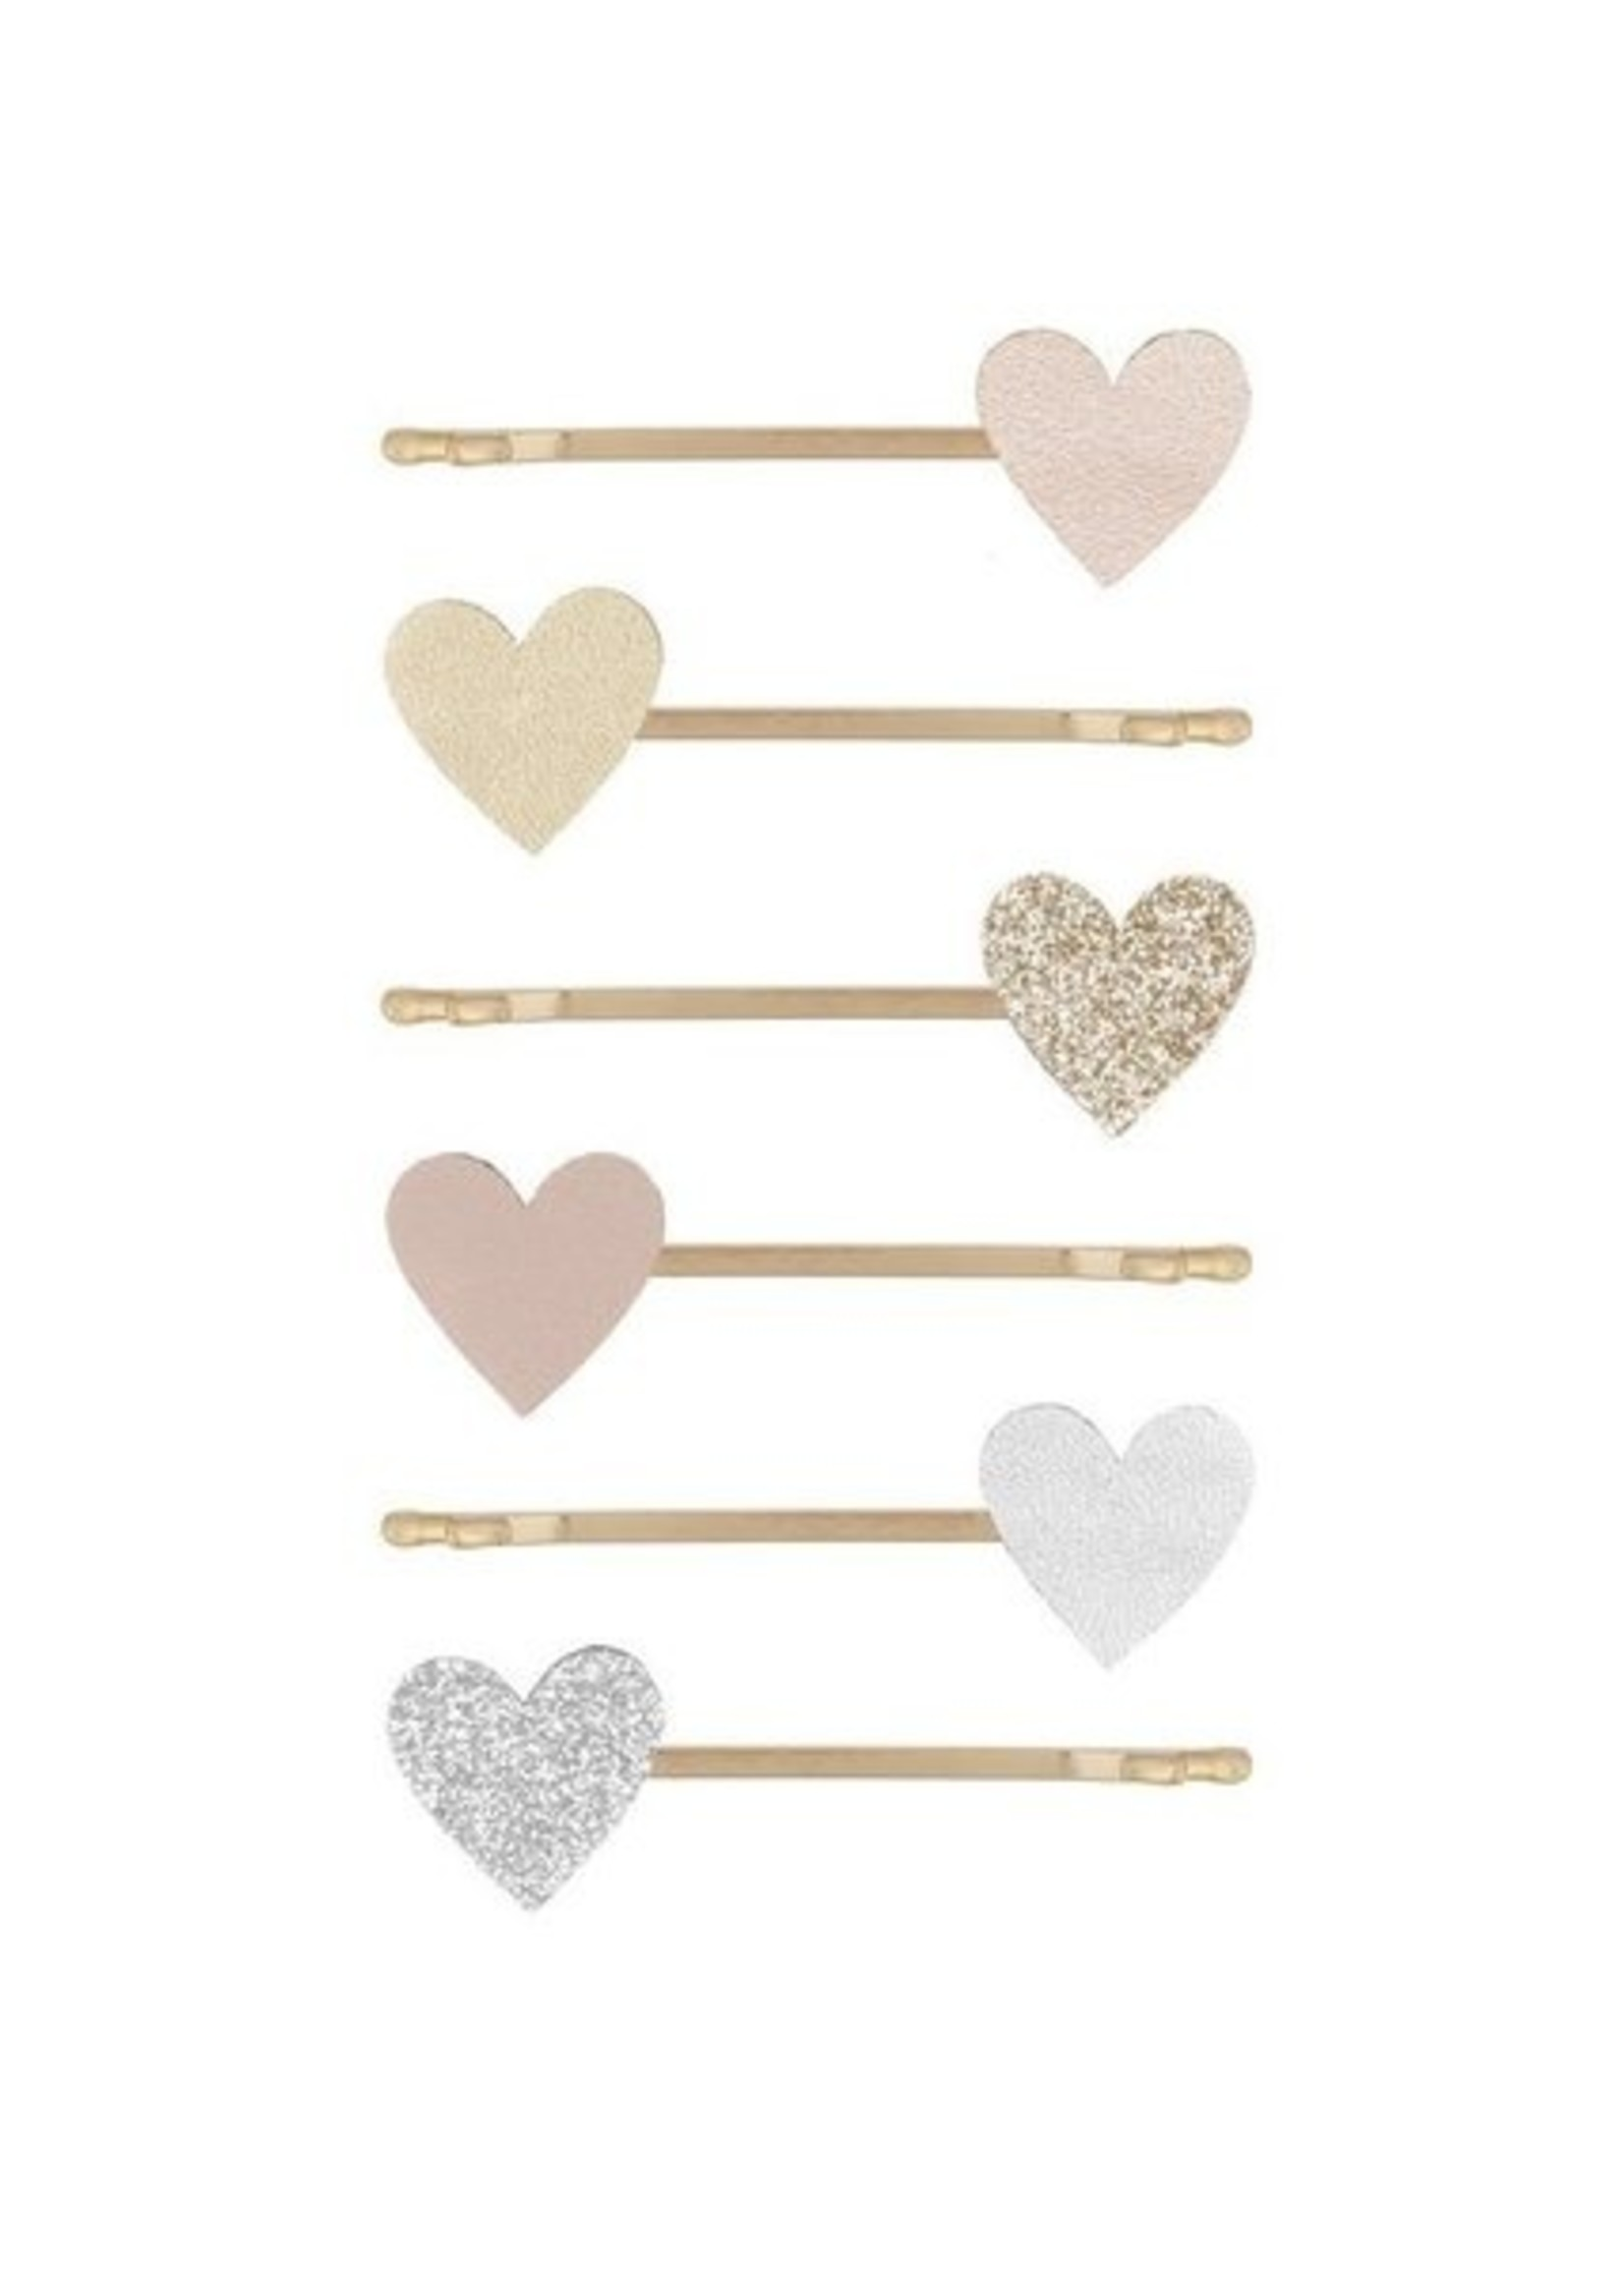 Mimi and Lula M&L - Love Heart Kirby Grips